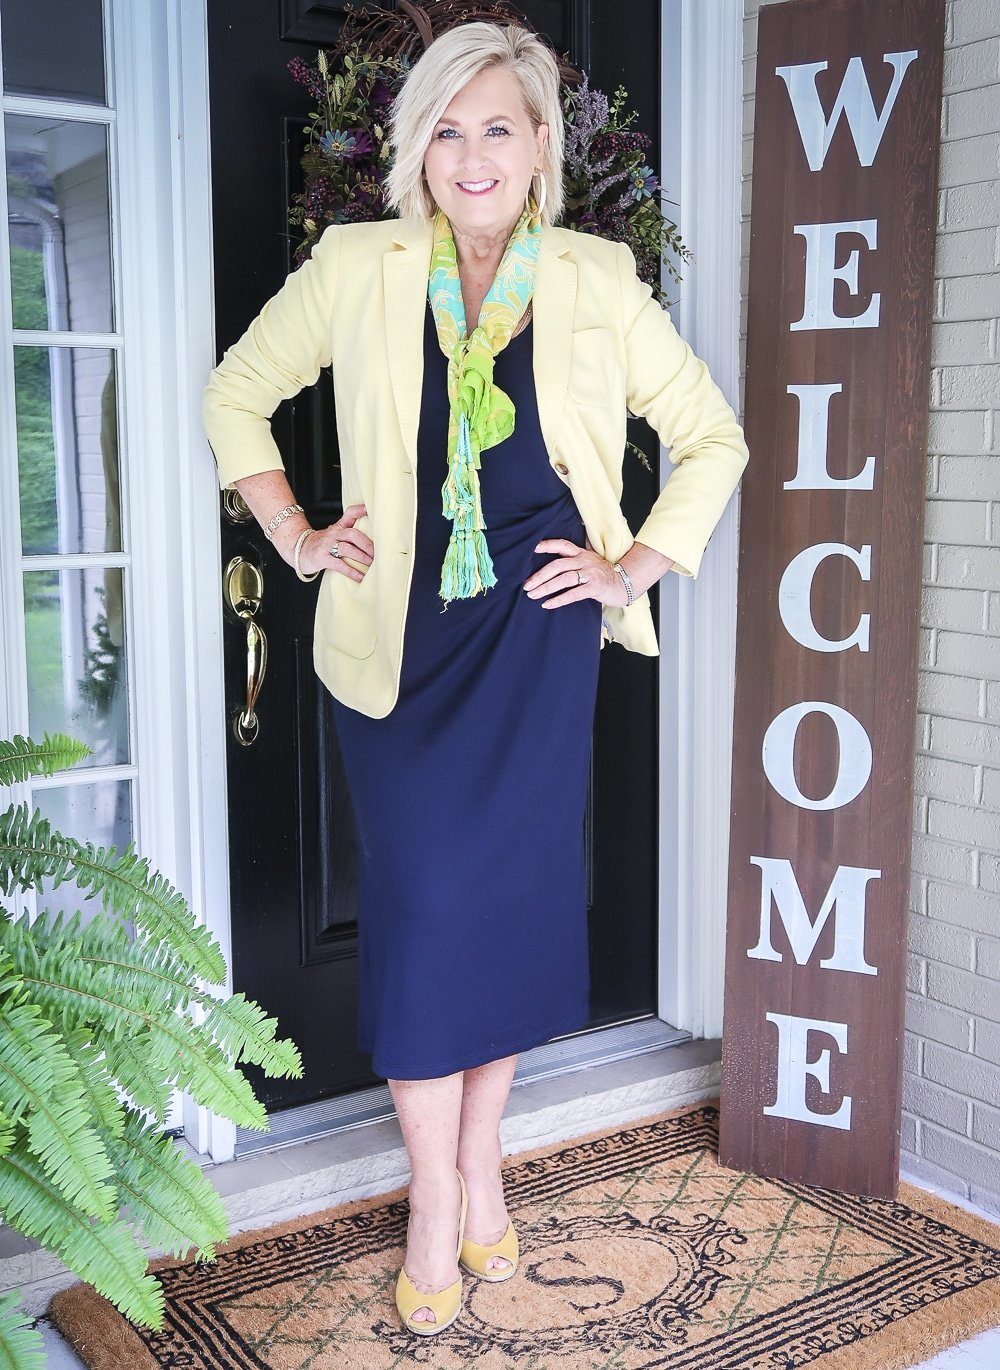 Fashion Blogger 50 Is Not Old is wearing a navy midi dress in all of the seasons. In the spring of the year, she added a pale lemon yellow blazer, a bright scarf, and a pair of yellow espadrille wedge shoes